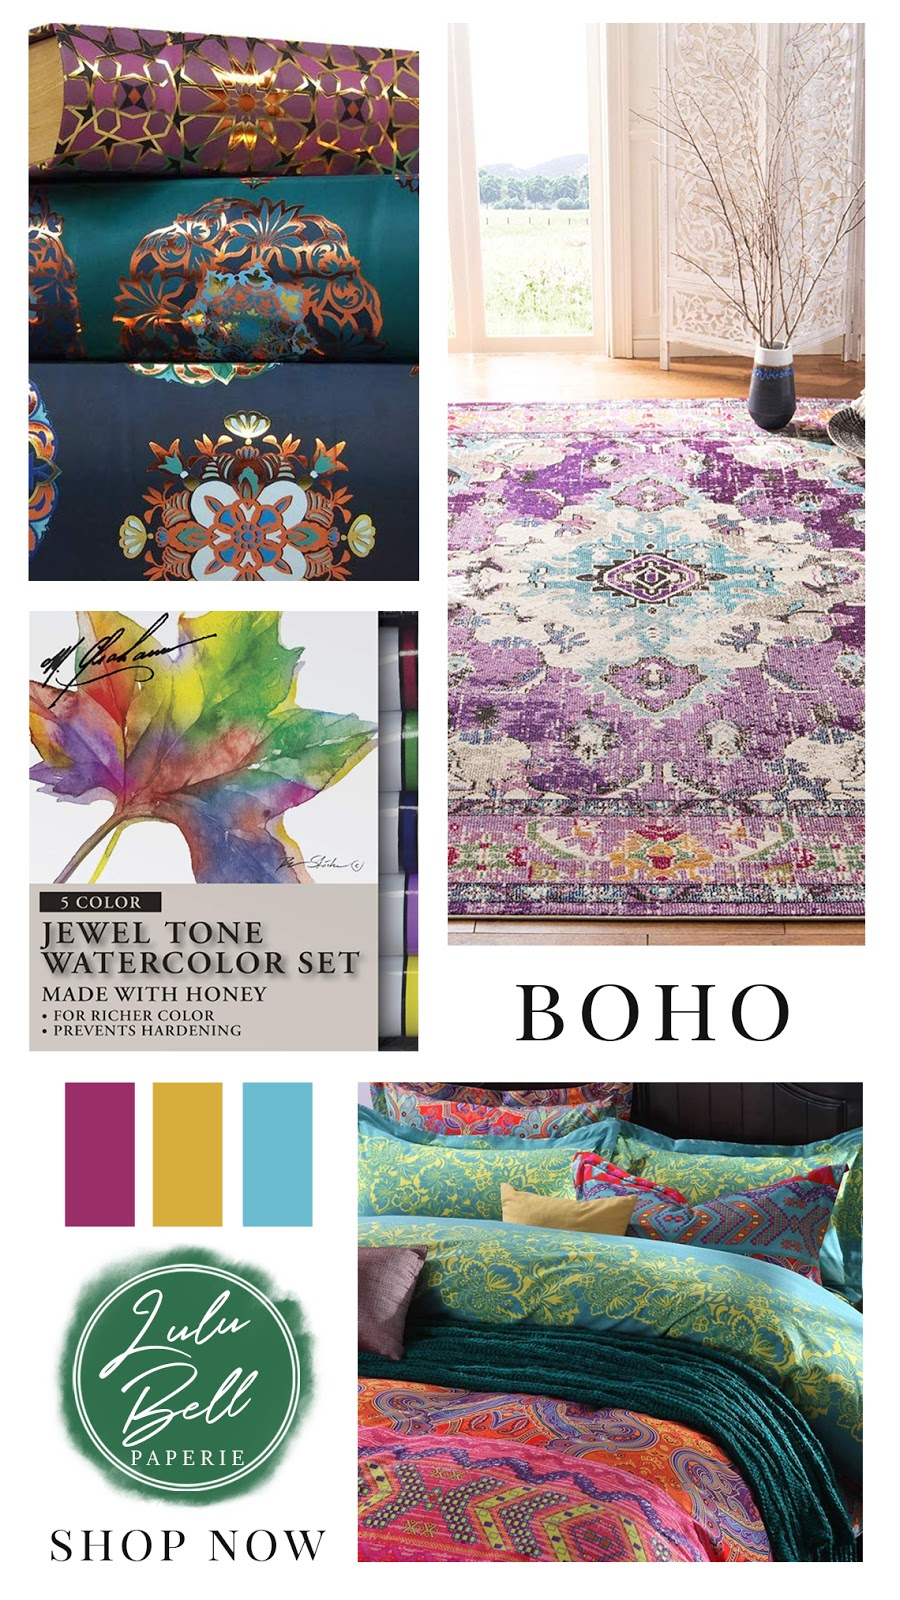 Bohemian Rainbow Home & Gifts Collection - Mandala Book Cases, Bohemian Rug, Watercolor Paint Set, and Boho Geometric Bedding Collection